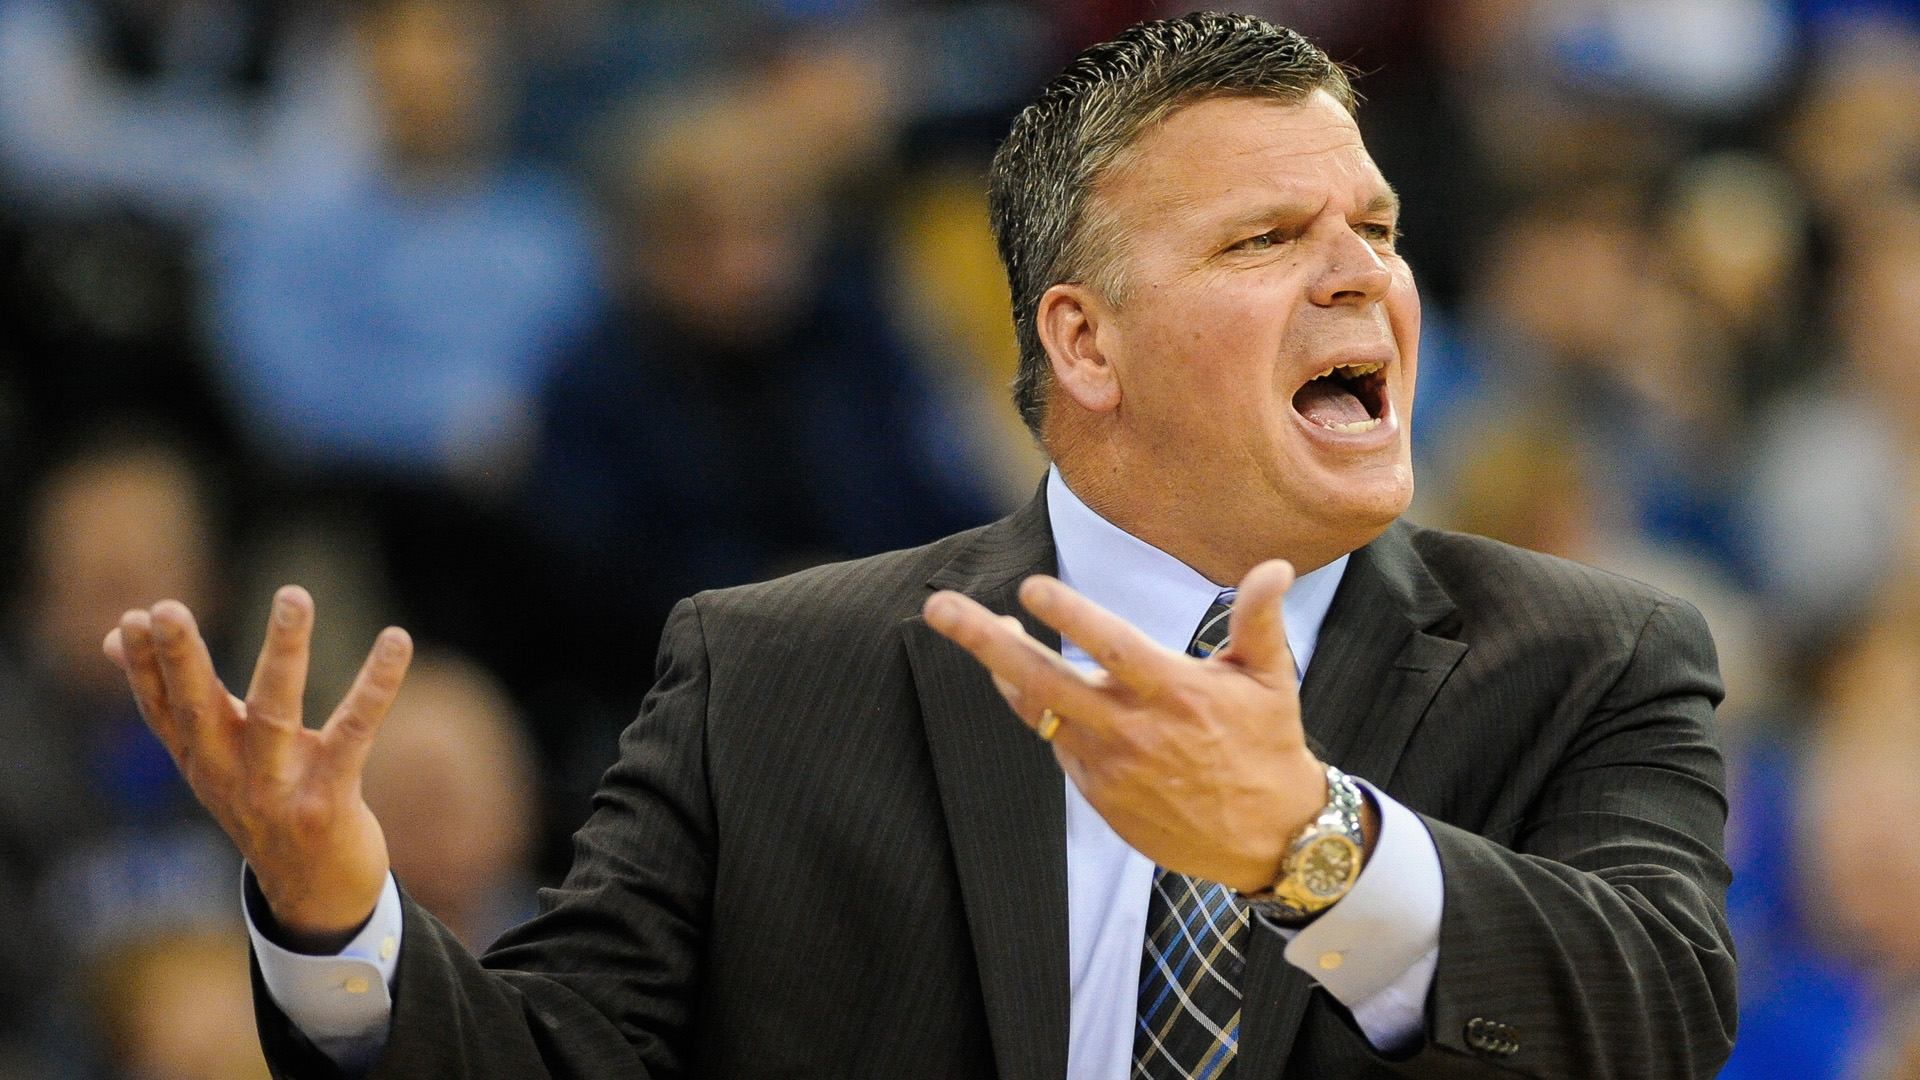 Creighton head coach Greg McDermott turns down Ohio State Buckeyes offer